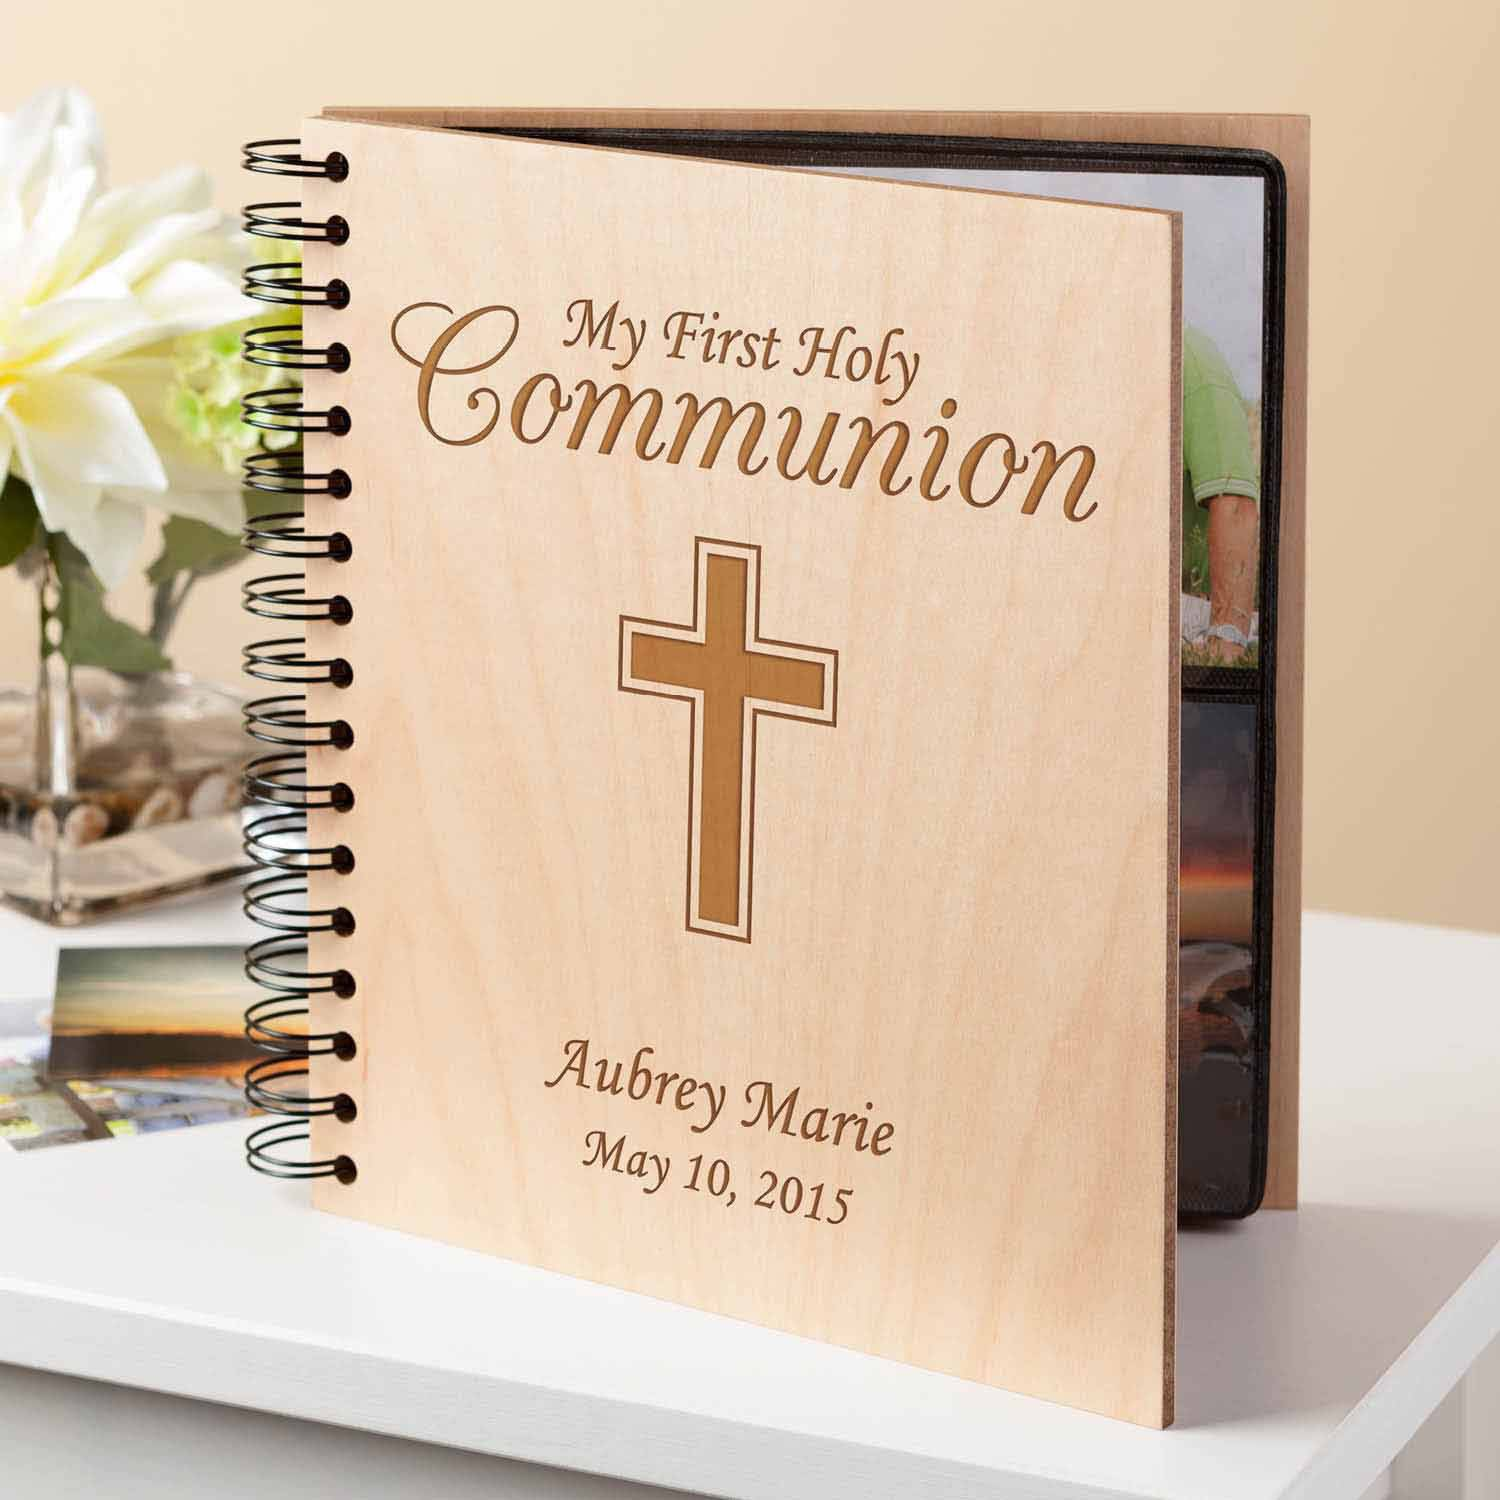 Personalized First Communion Gift Album with Chalice